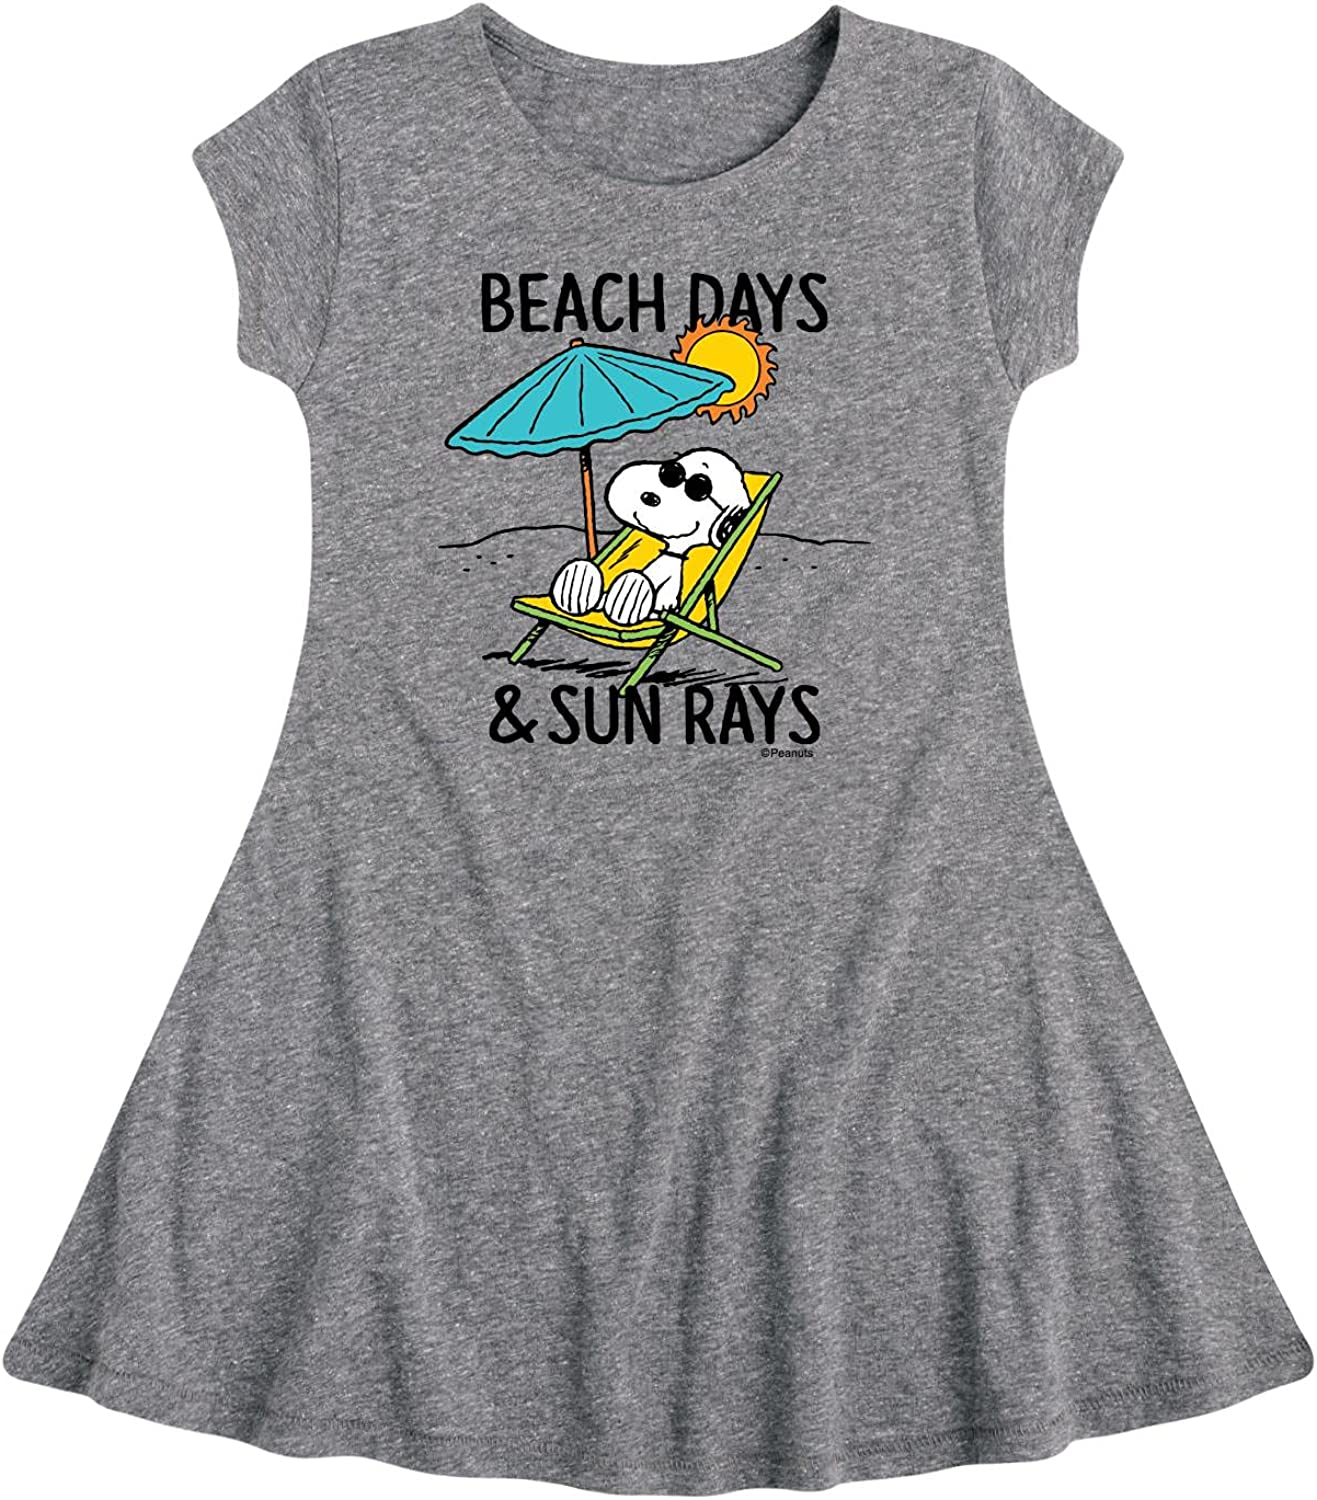 Peanuts - Beach Days Sun Rays - Toddler and Youth Girls Fit and Flare Dress